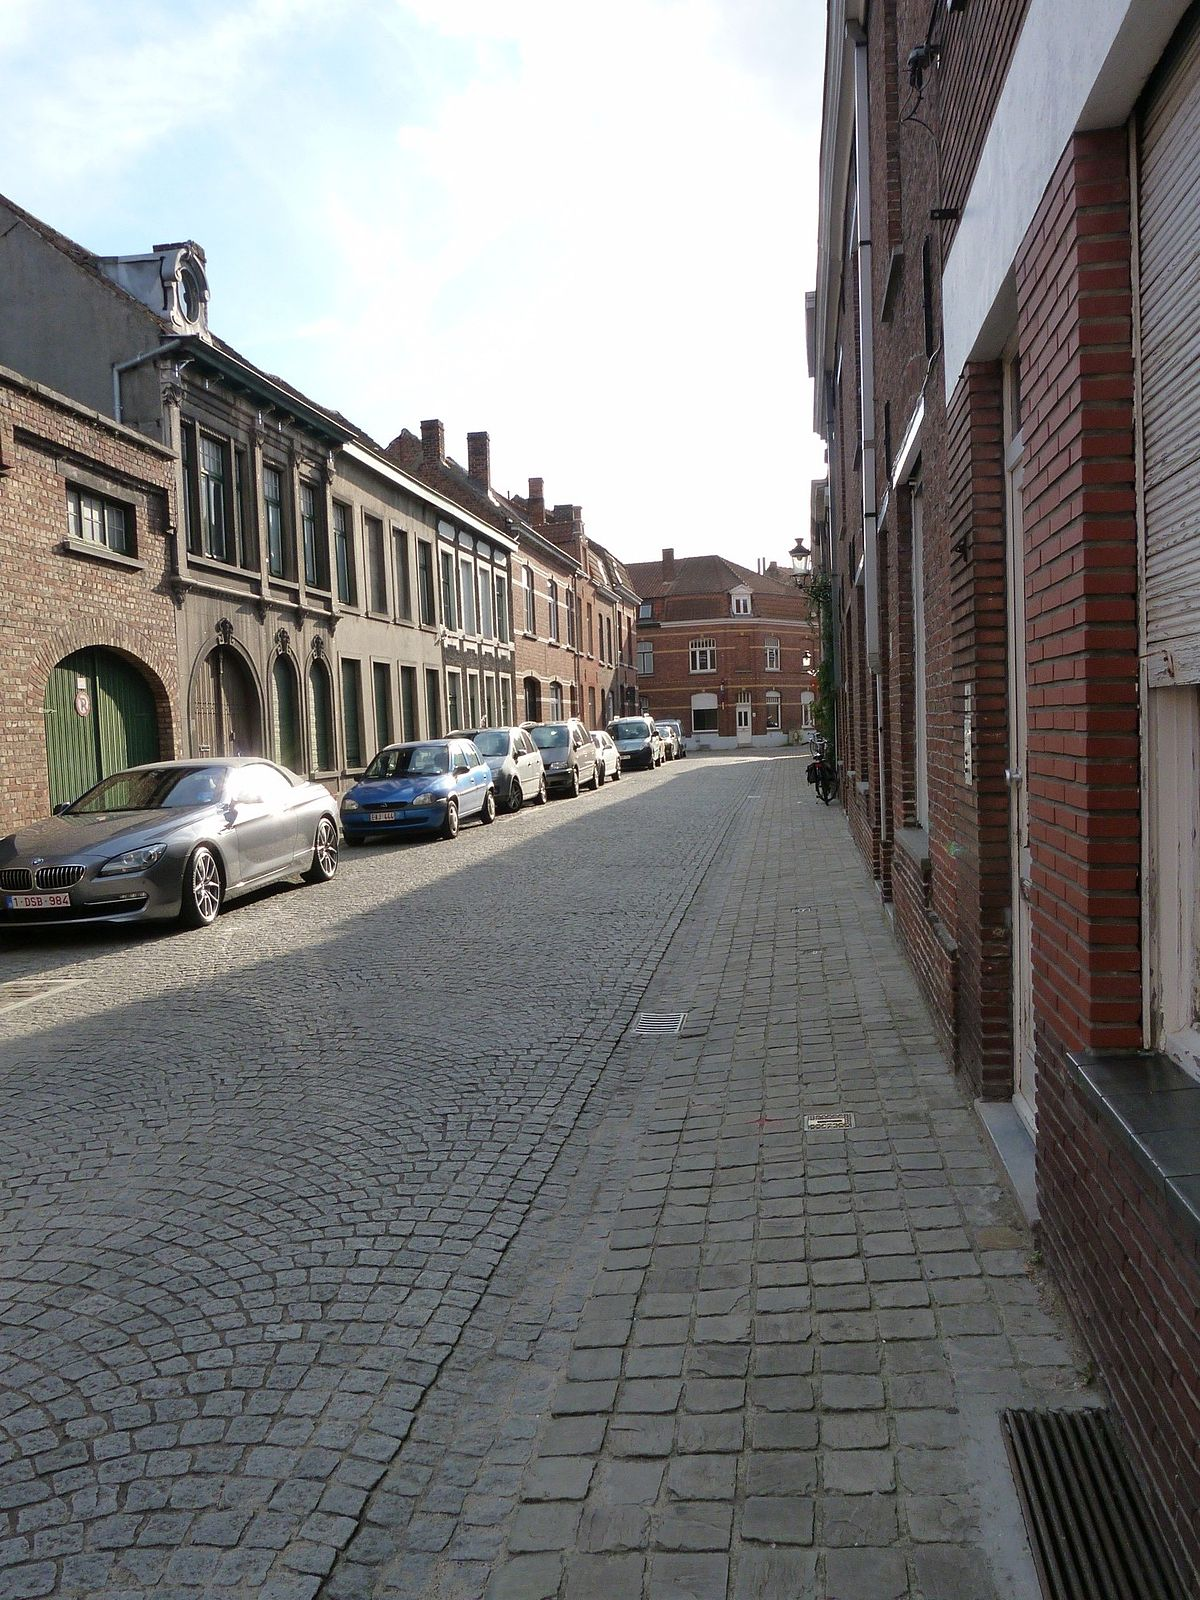 Gieterijstraat - Wikipedia